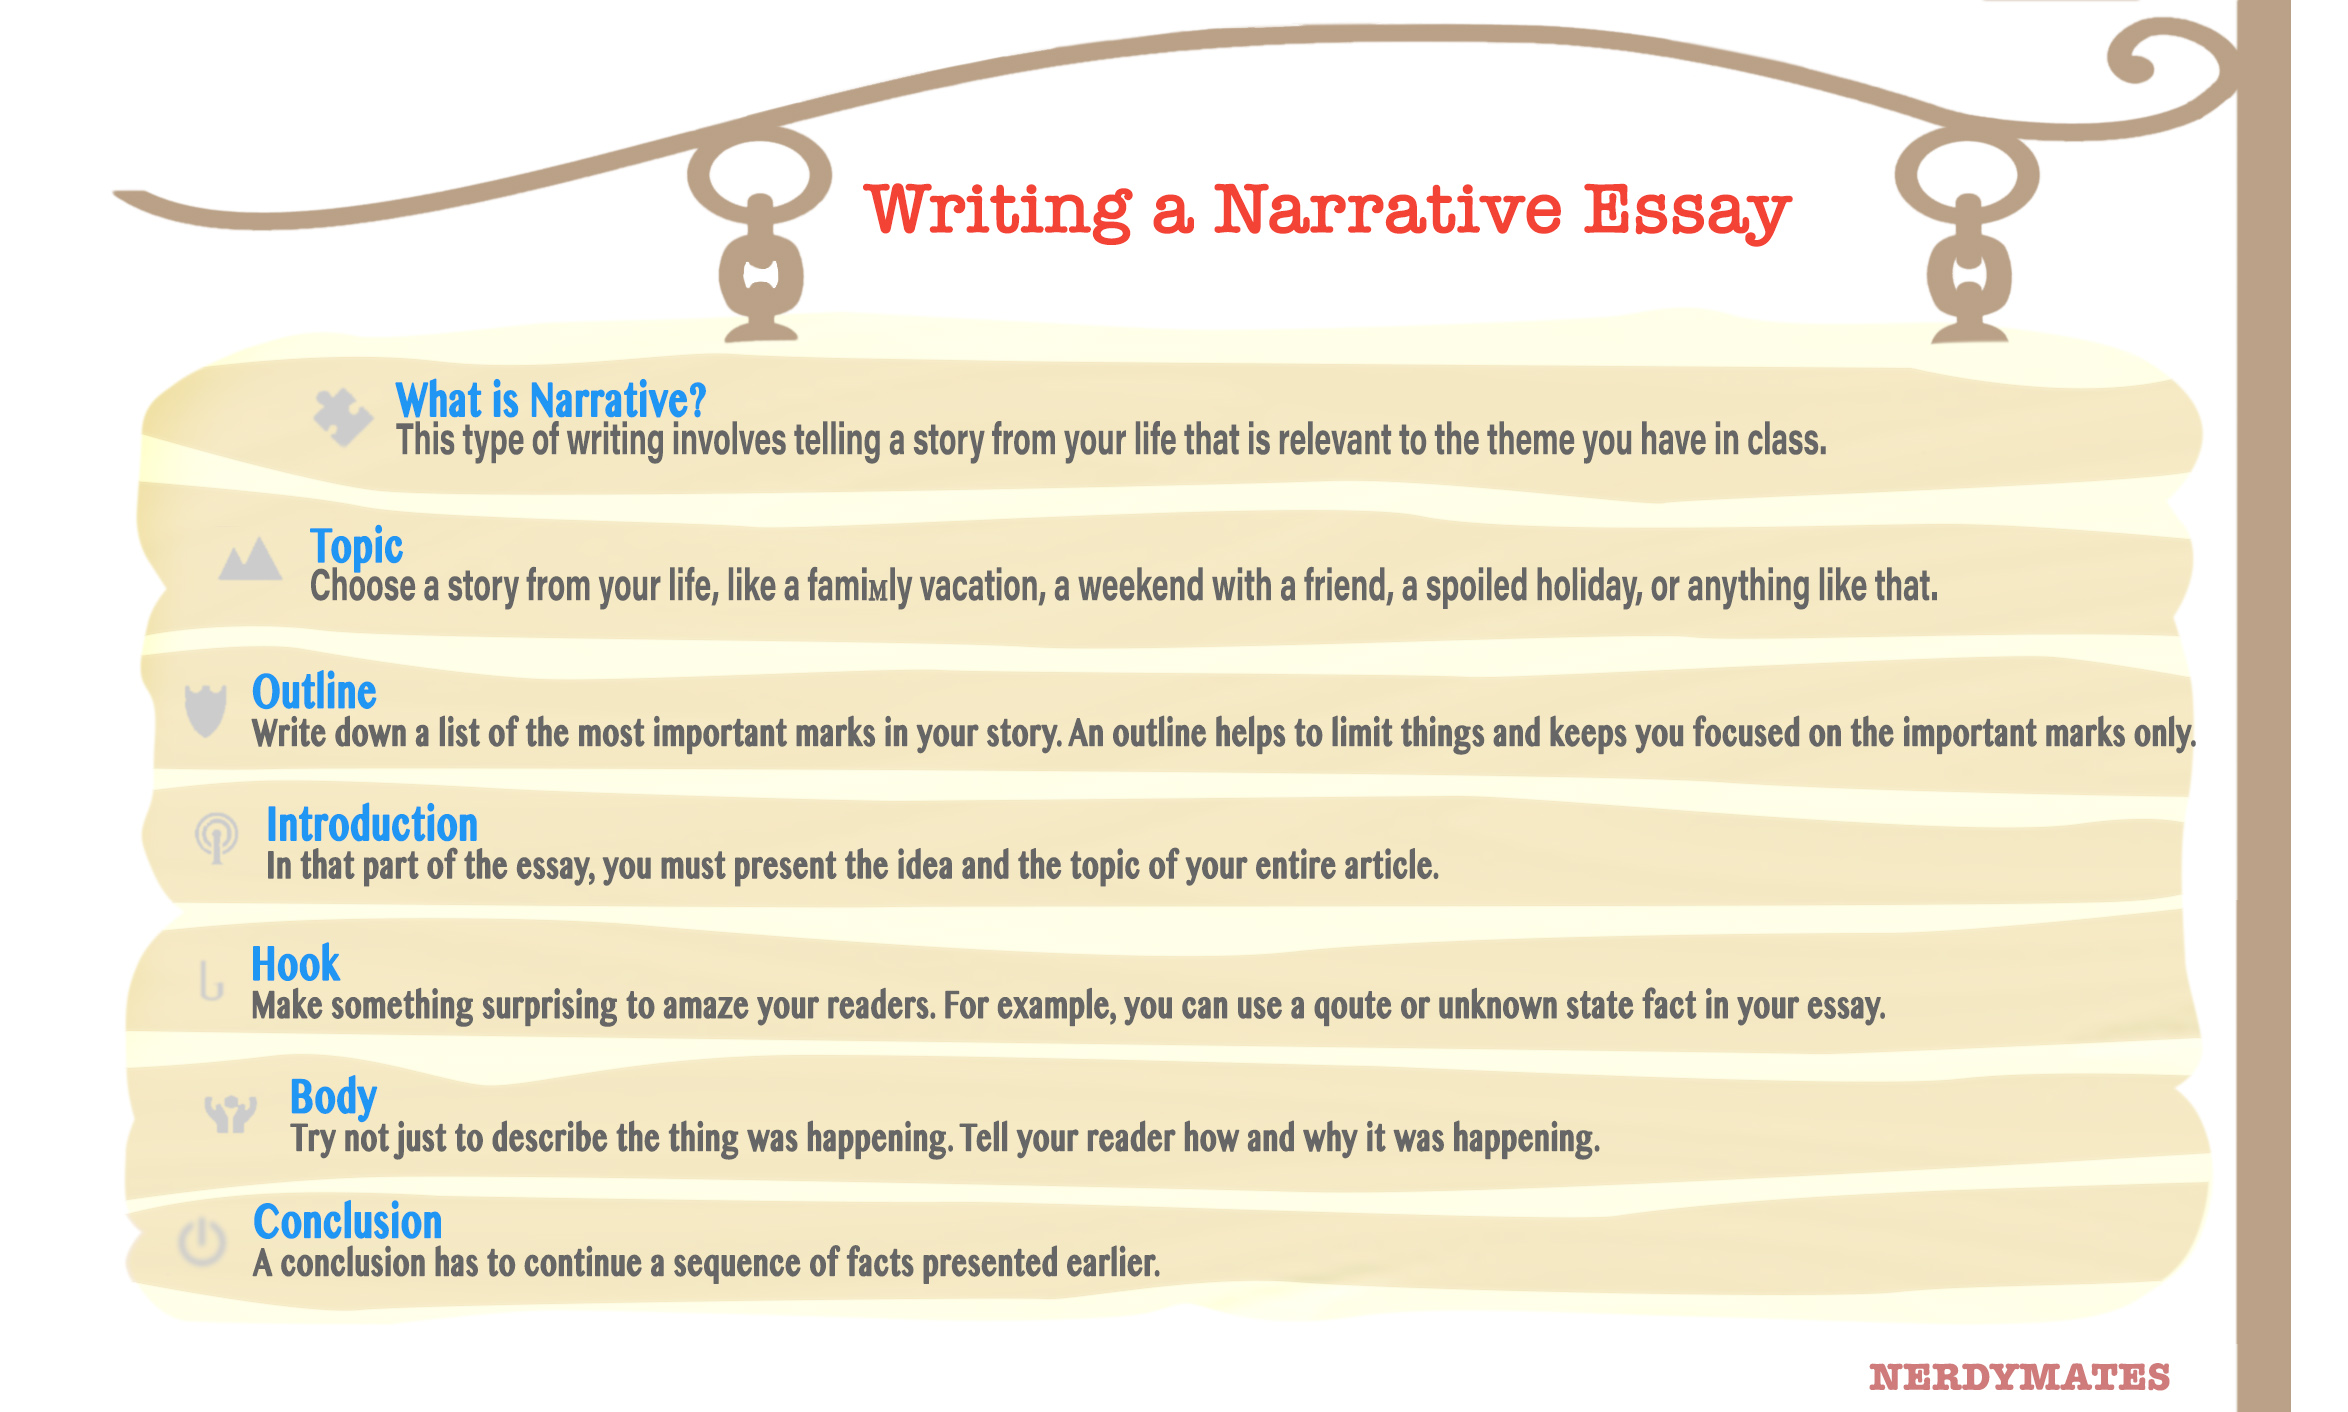 What is narrative essay writing